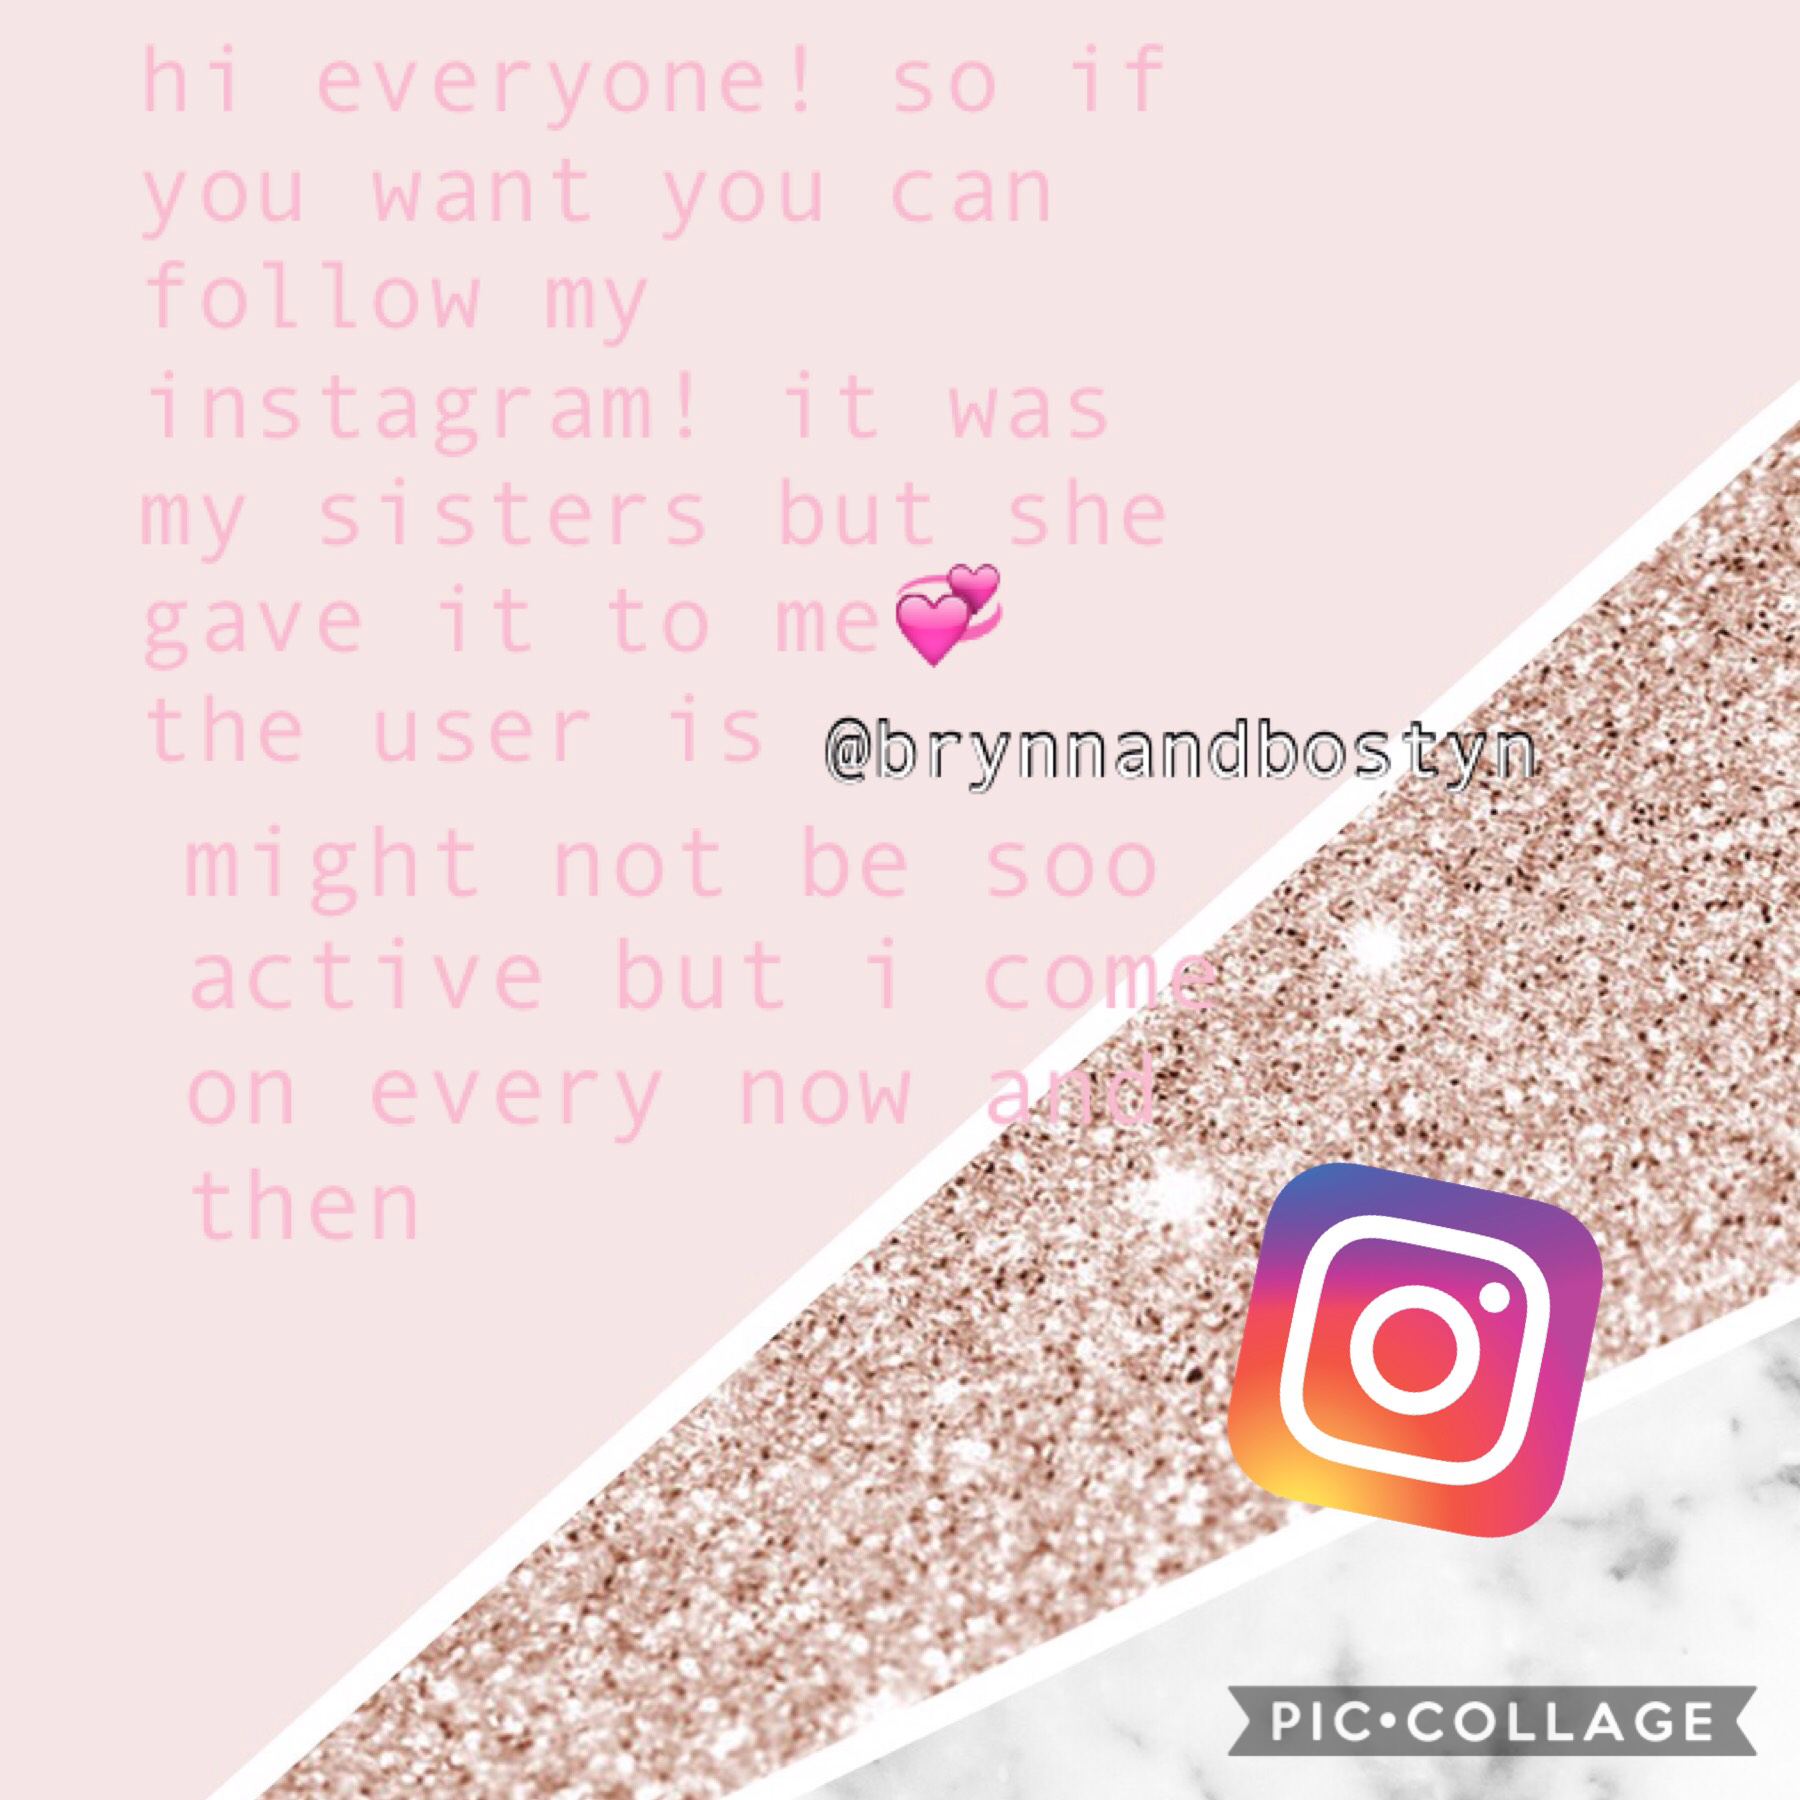 c•l•i•c•k     hi guys! as you read in this post i made an instagram, im not so active but i still come on sometimes. my user is @brynnandbostyn so go follow me and comment your user in the comments! 💖🌼 bye lovlies 😊💘💘 xx